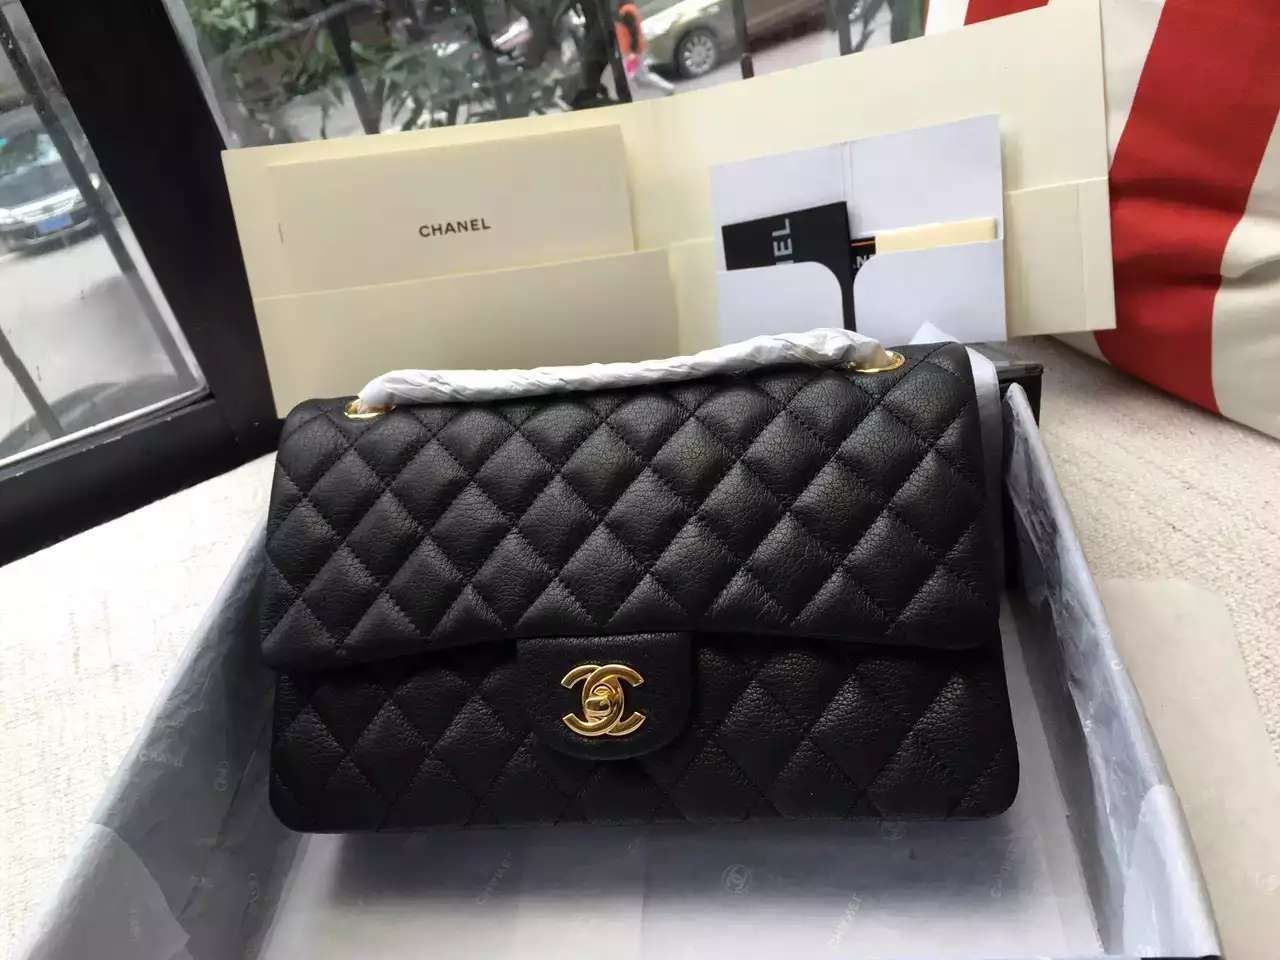 chanel Bag, ID : 46655(FORSALE:a@yybags.com), chanel online shop usa, chanel wiki, chanel discount purses, chanel in usa, chanel fabric bags, chanel day backpacks, chanel the brand, chanel buy purse, chanel shop bags, chanel purse handbag, chanel shopper, chanel briefcases for sale, chanel usa shop online, chanel online purchase #chanelBag #chanel #1 #chanel